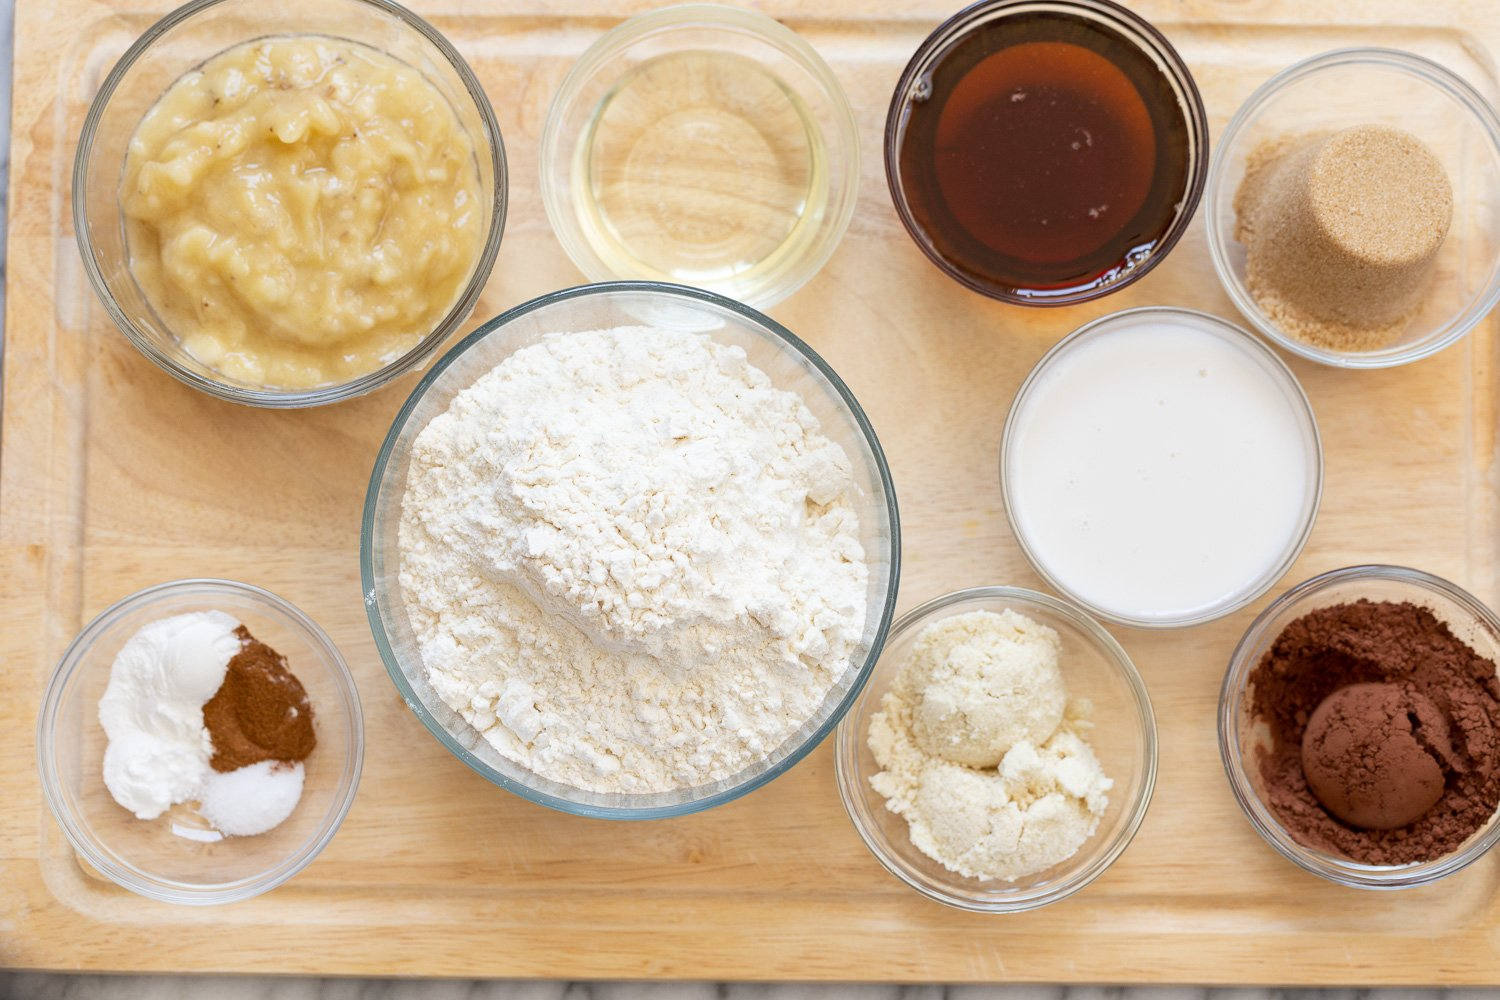 overhead shot of ingredients used for making vegan chocolate banana bread